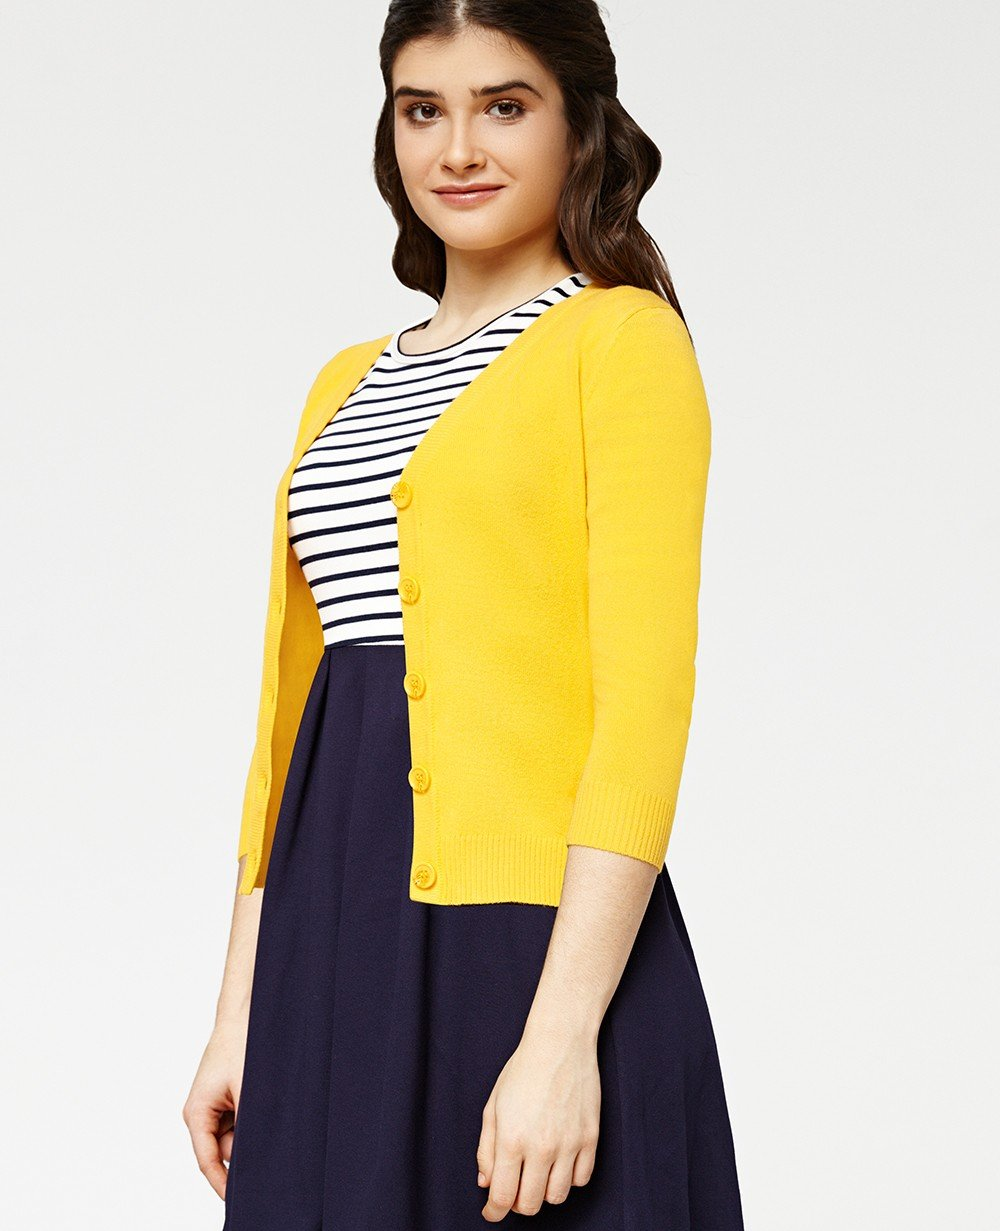 Misfit London Oxford Academy Cardigan in Honey British Teacher Style Cardigan